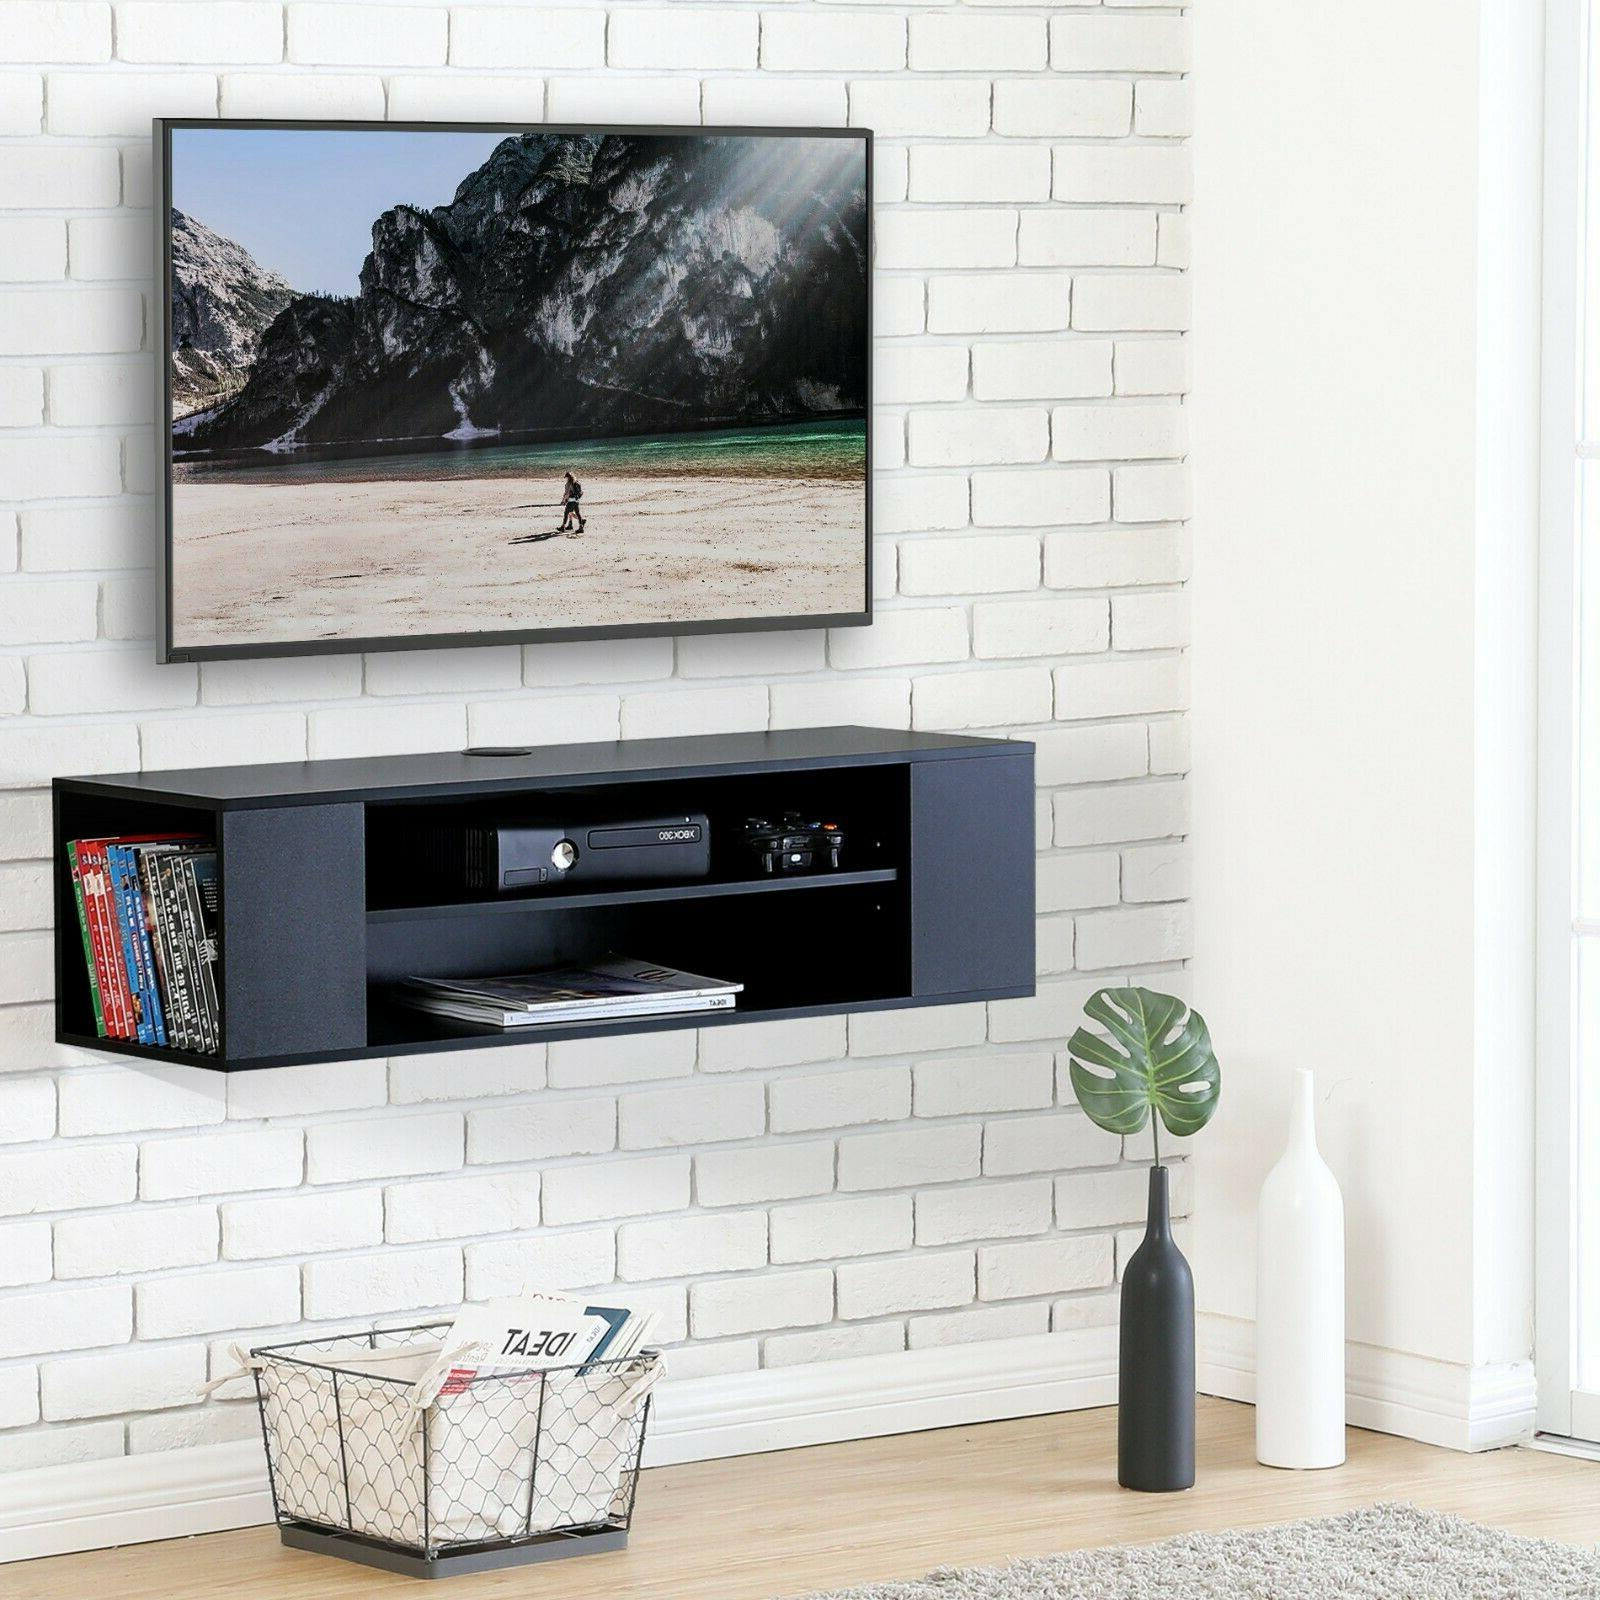 FITUEYES Wall Mounted Console,Floating TV Stand Shelf,Black